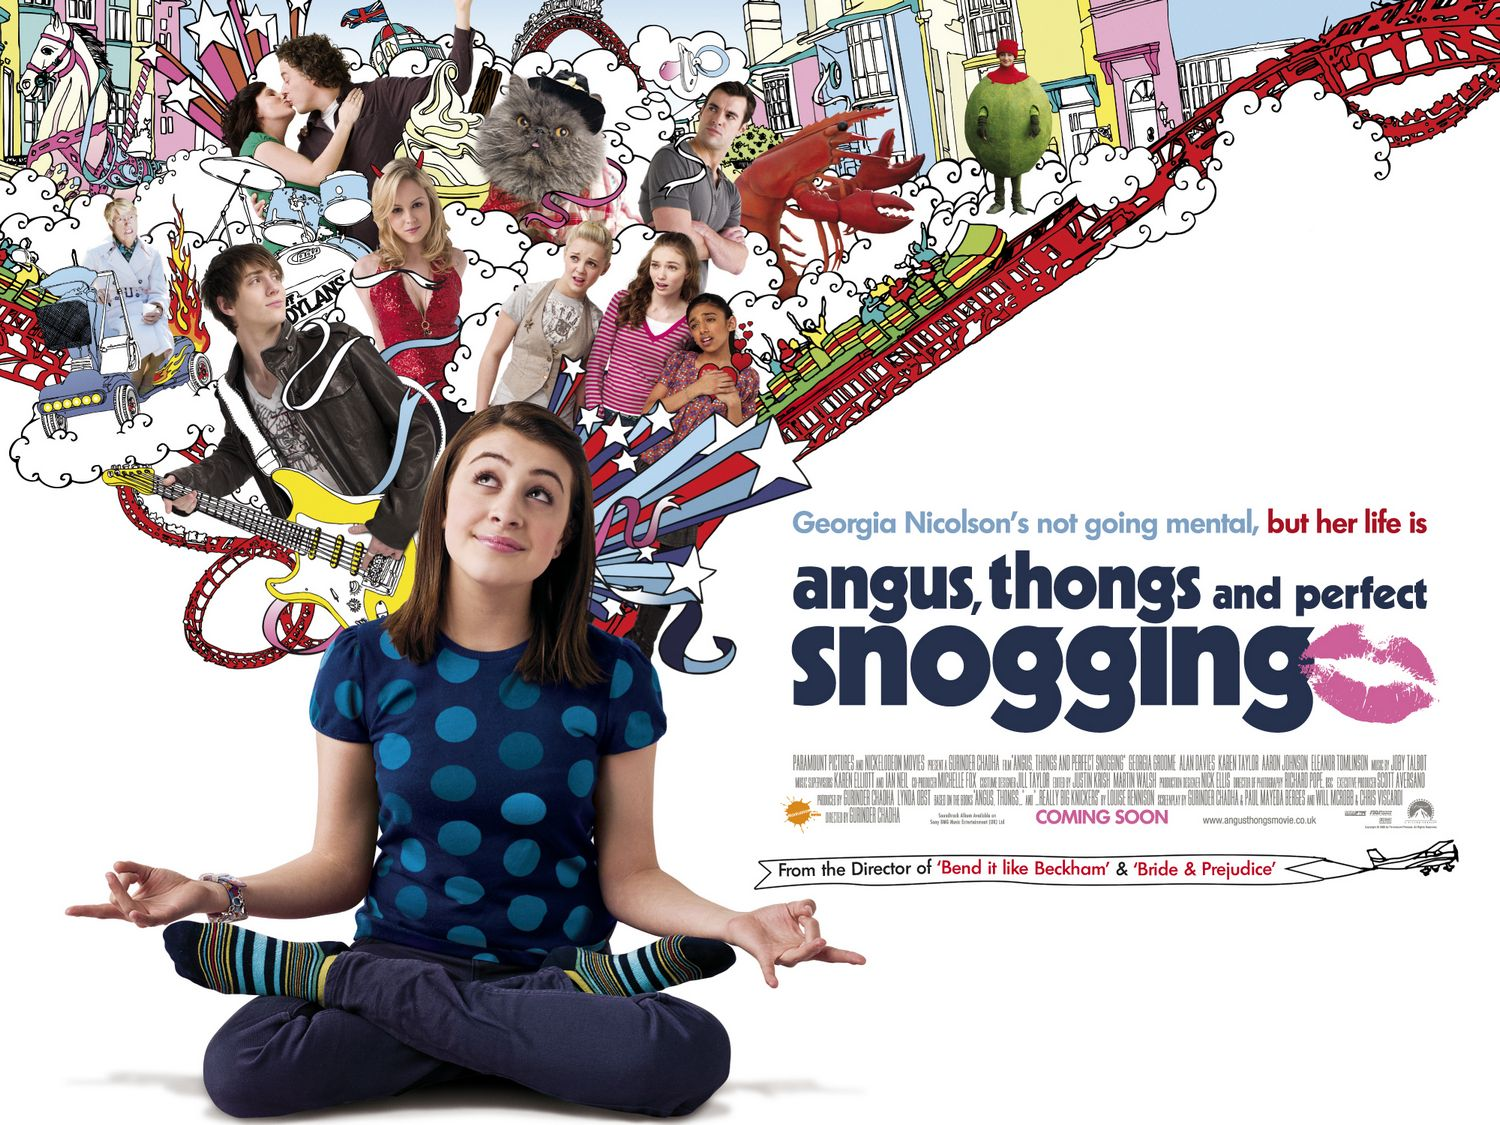 http://vj.net.ua/images/posters/2008/angus_thongs_and_full_frontal_snogging/angus_thongs_and_full_frontal_snogging_1.jpg